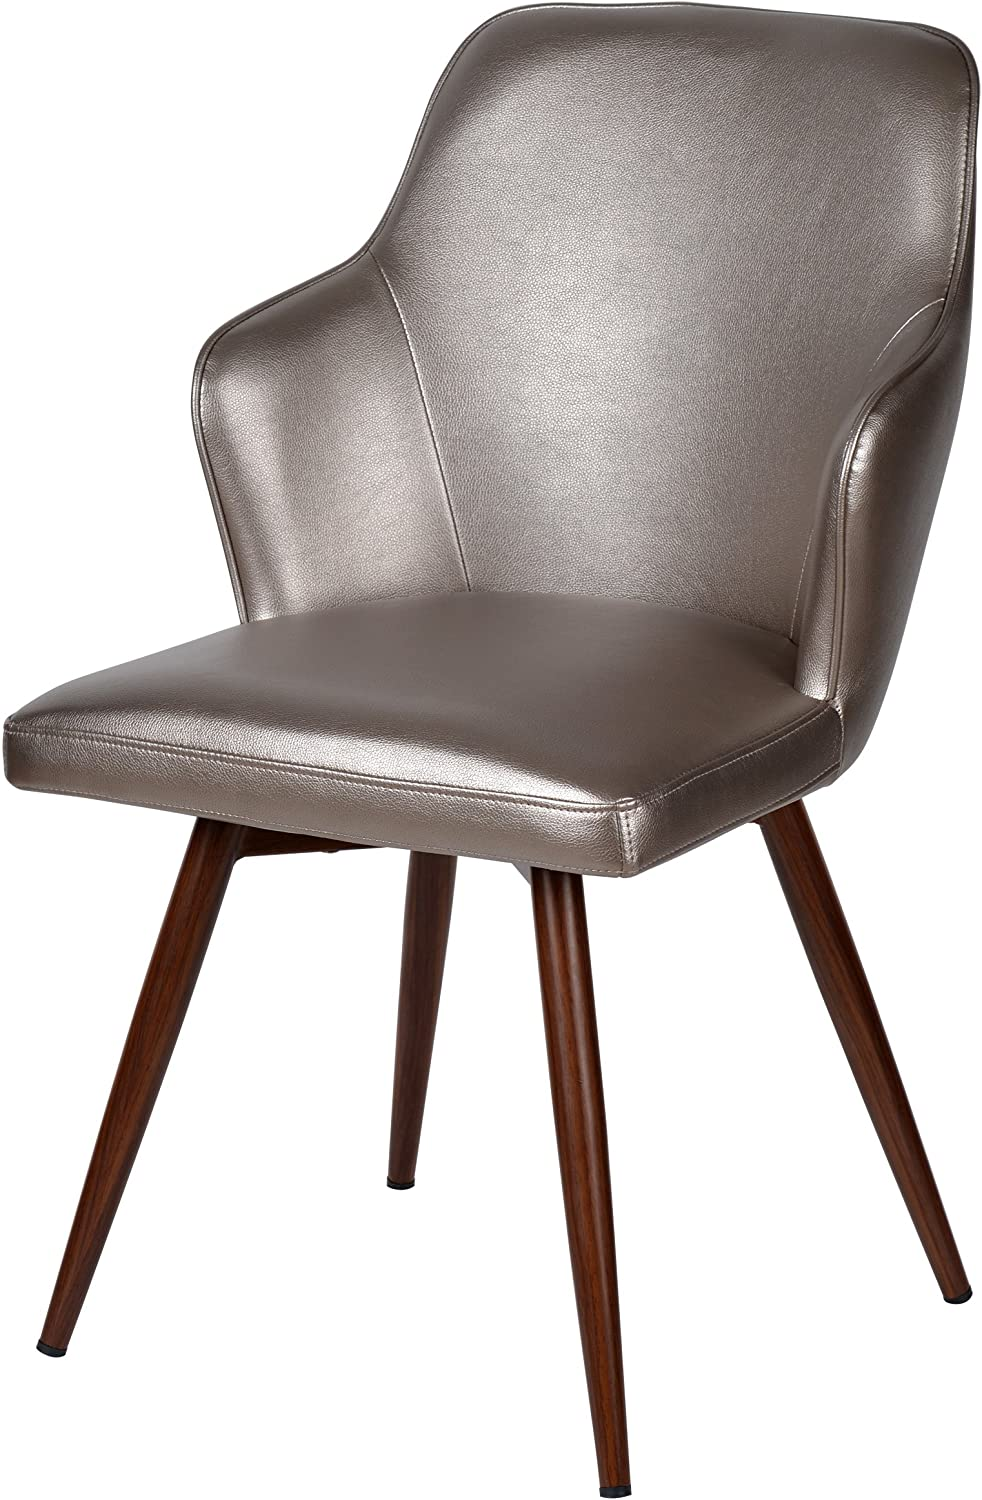 Benzara Contemporary Style Swivel Dining Chair, Silver